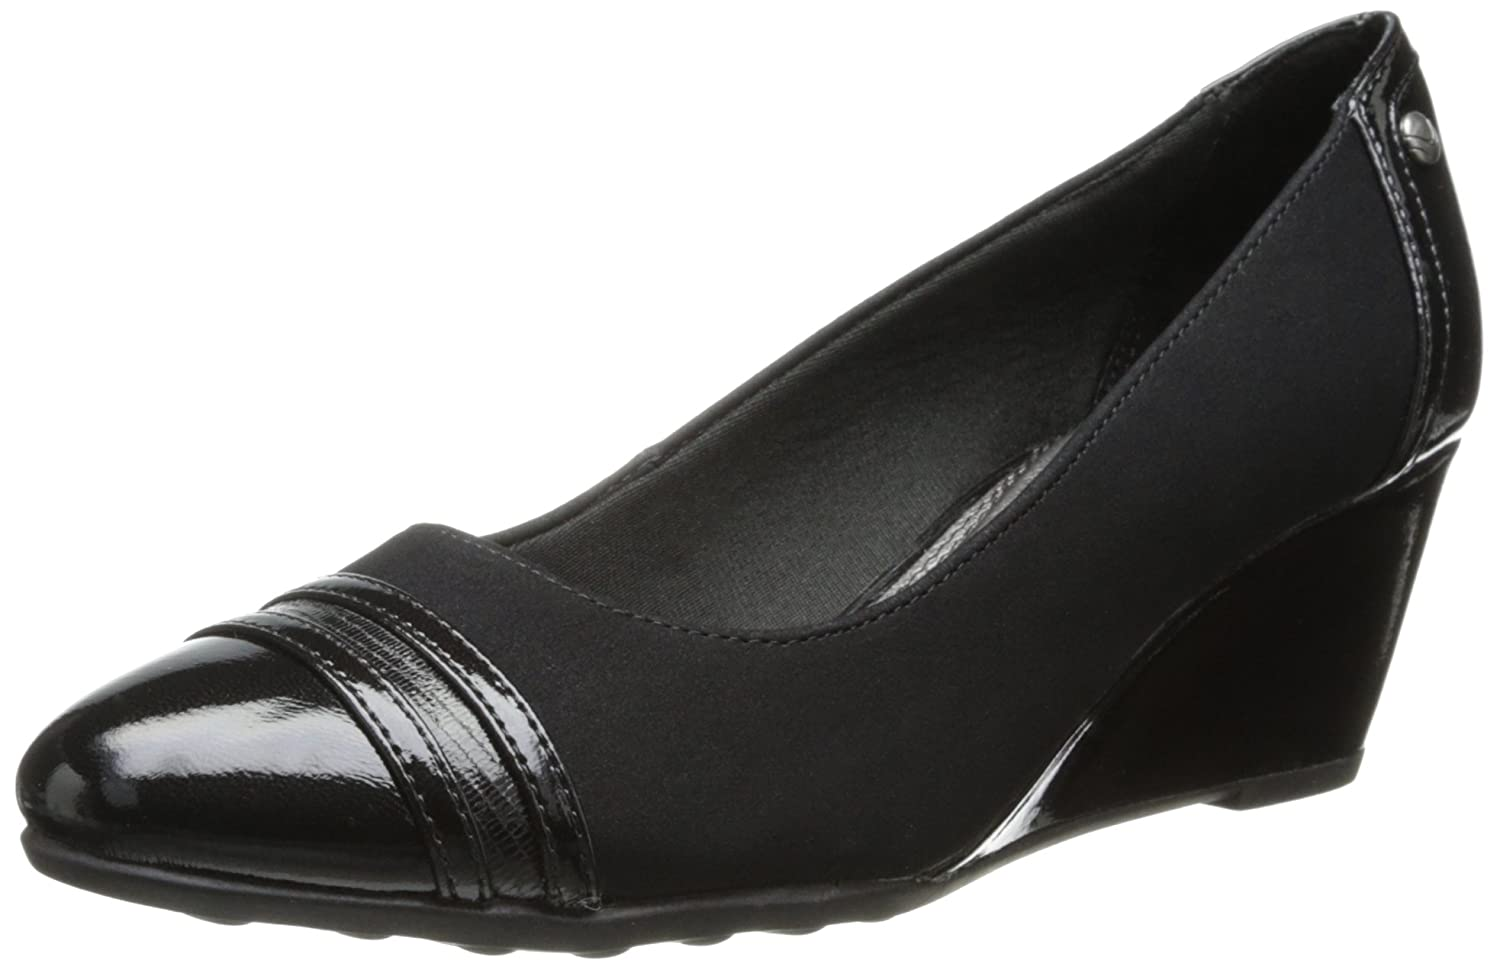 b789722b32 Amazon.com | LifeStride Women's Juliana Wedge Pump | Shoes